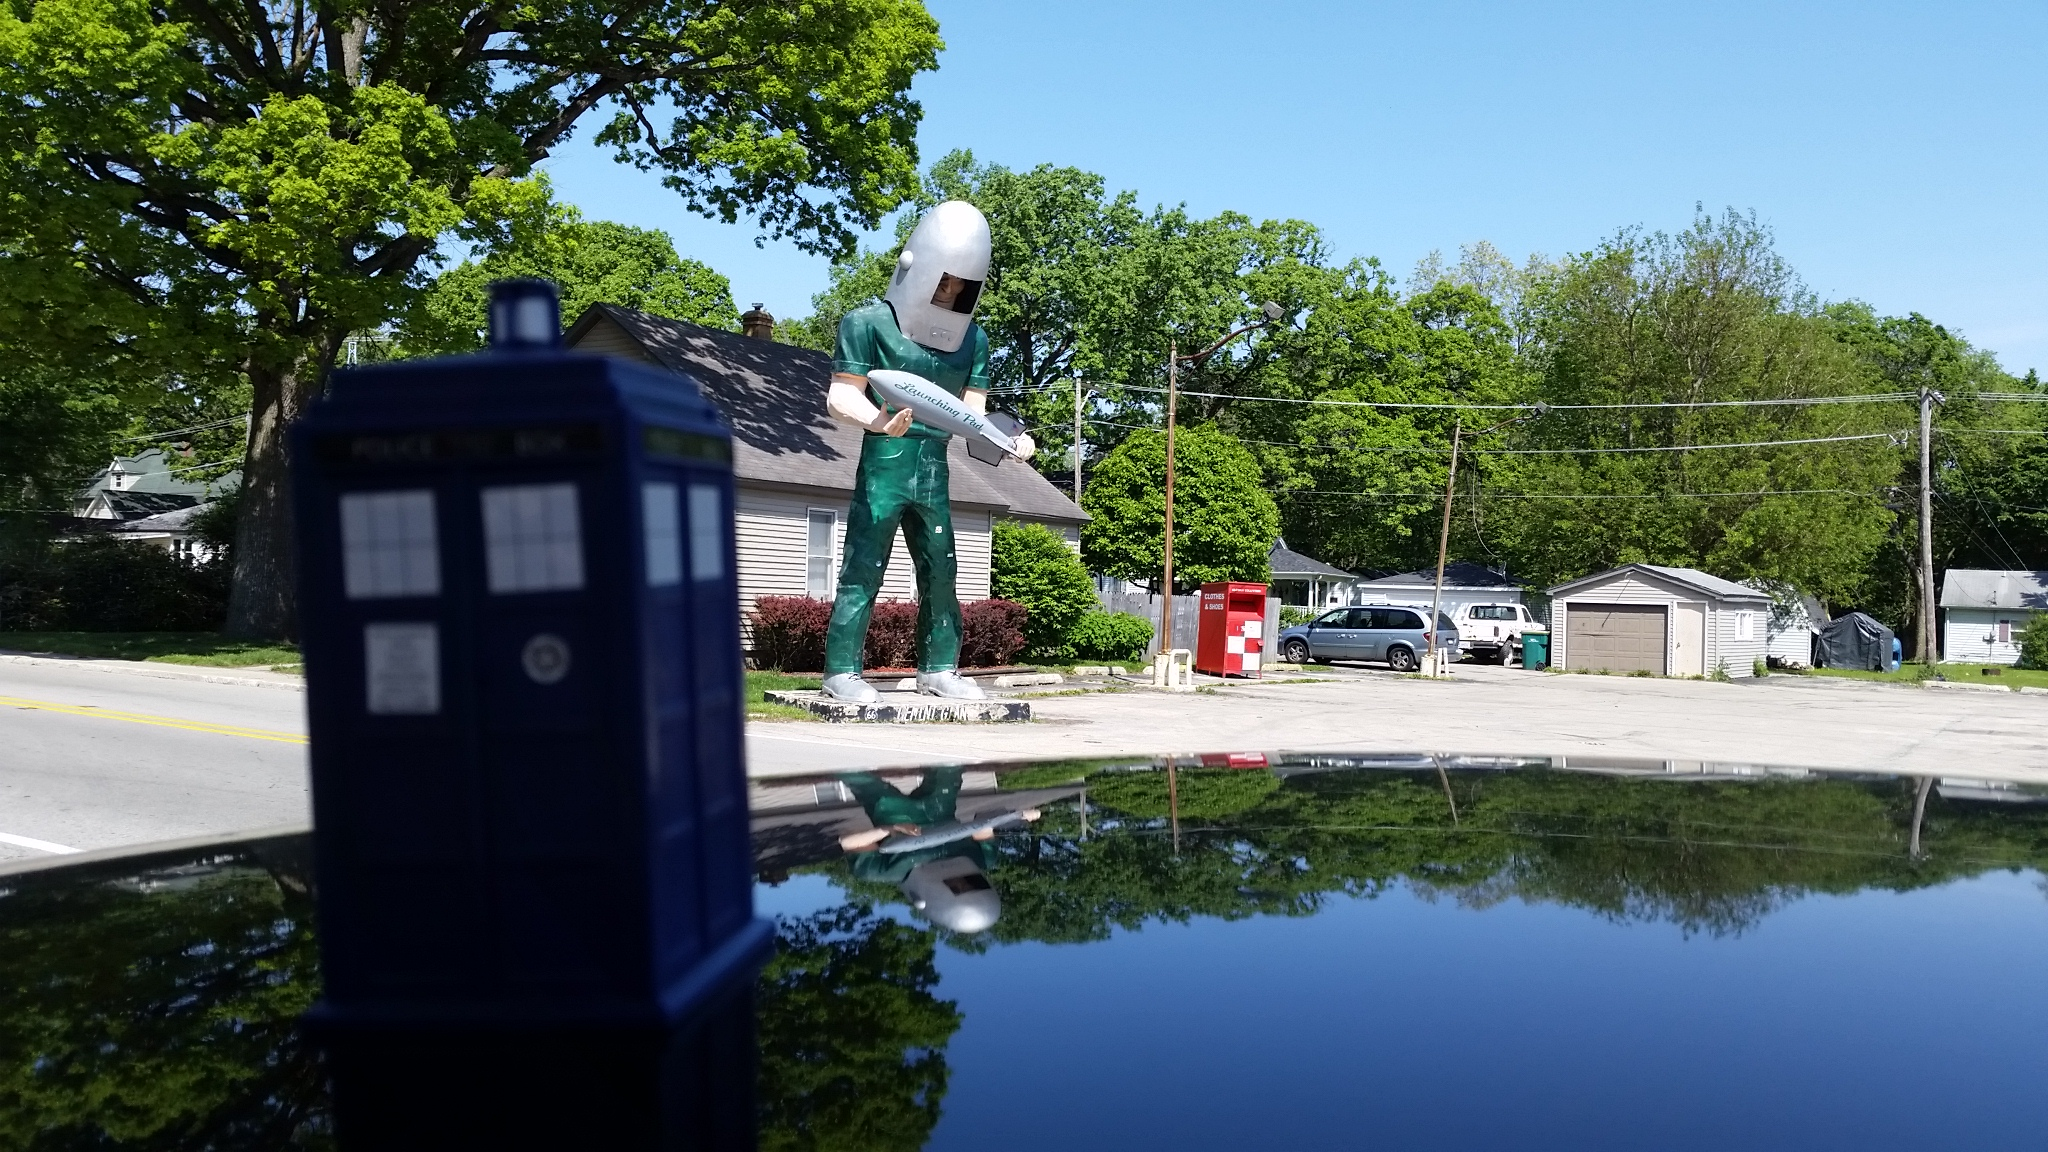 A TARDIS Abroad - Launching Pad Drive-In Wilmington Illinois Route 66